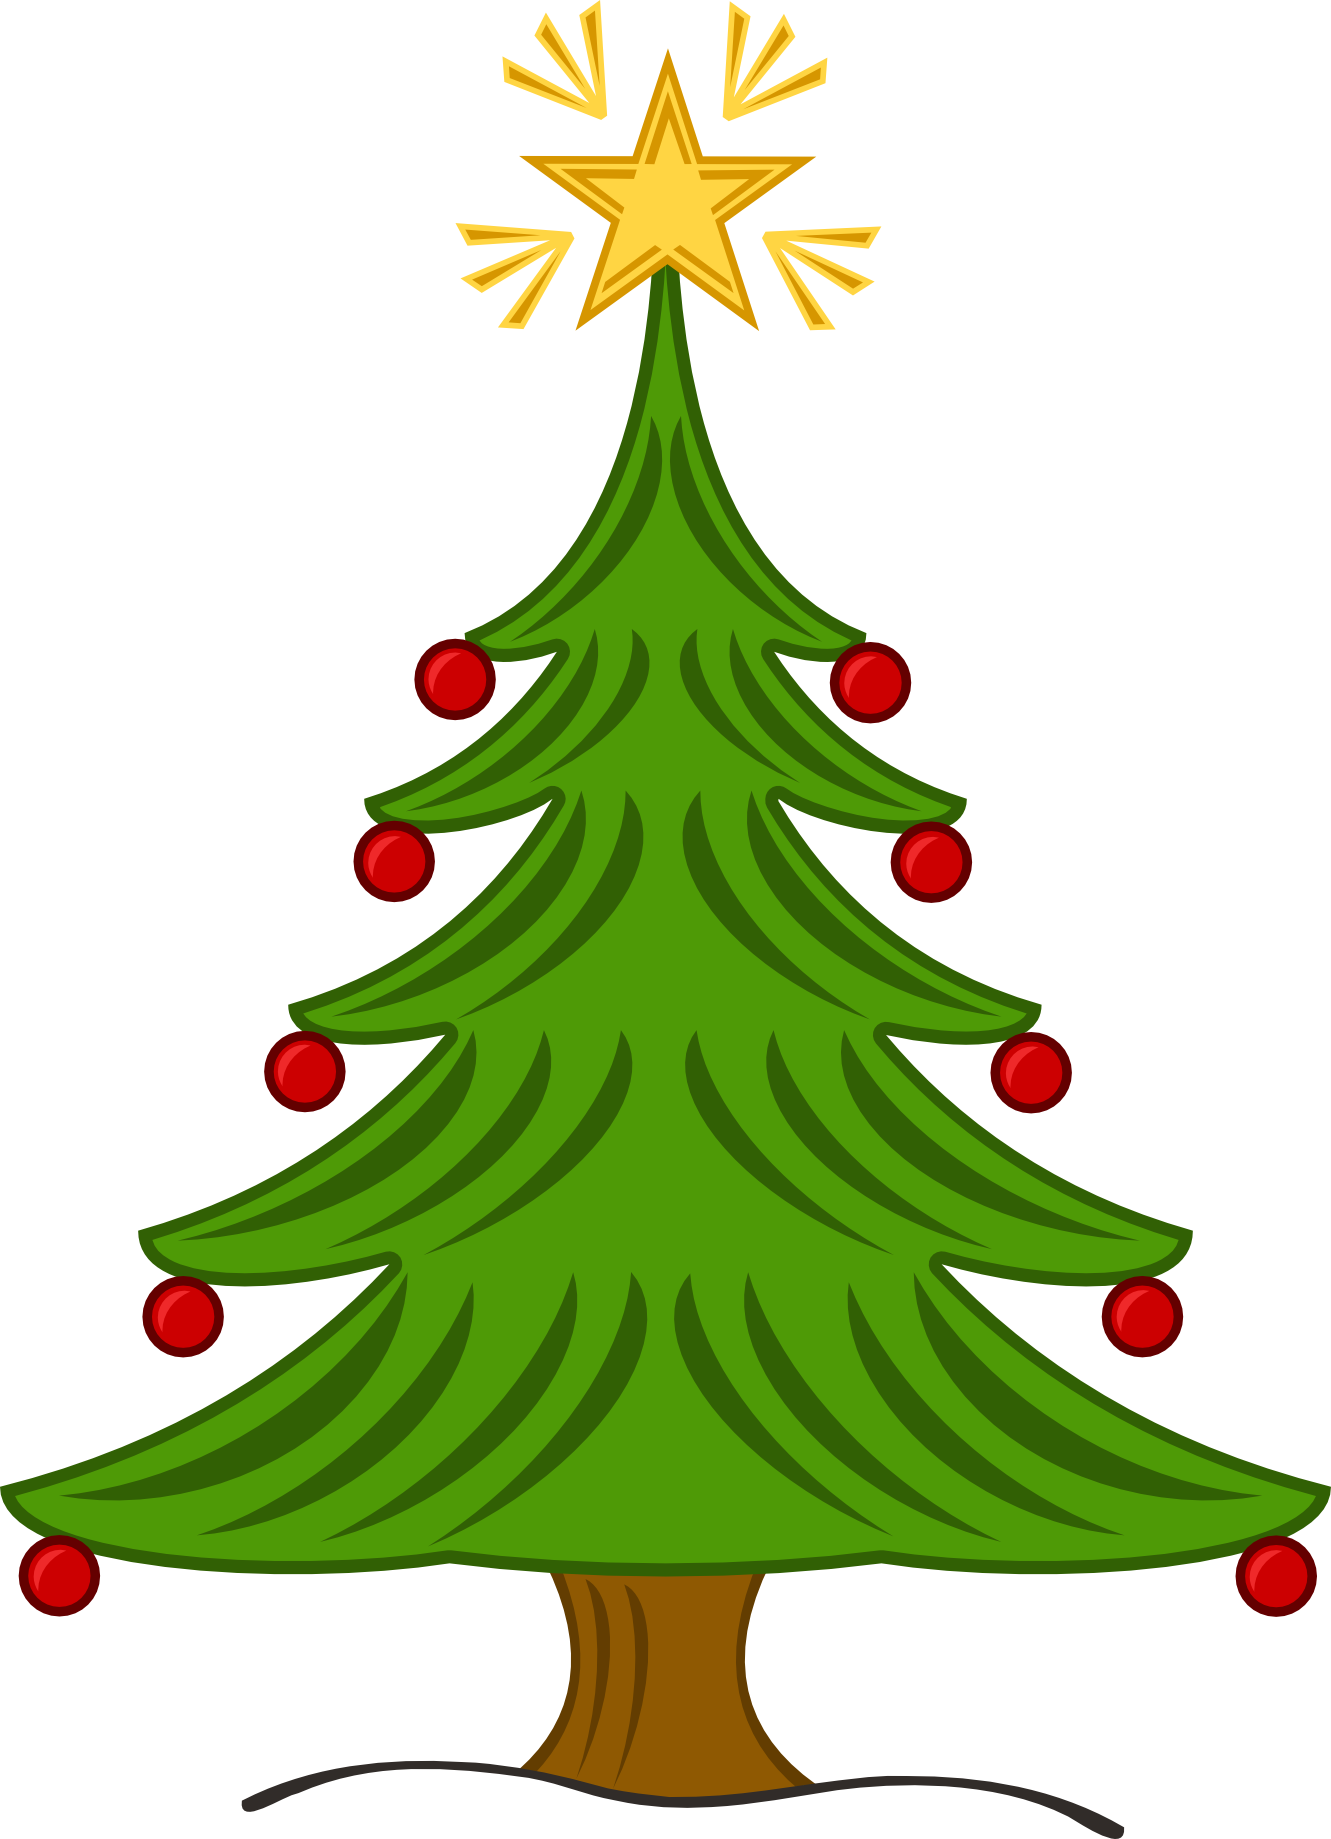 Pin By Mary Mccurdy On Natal Xxi Christmas Clipart Free Christmas Tree Images Christmas Tree Clipart